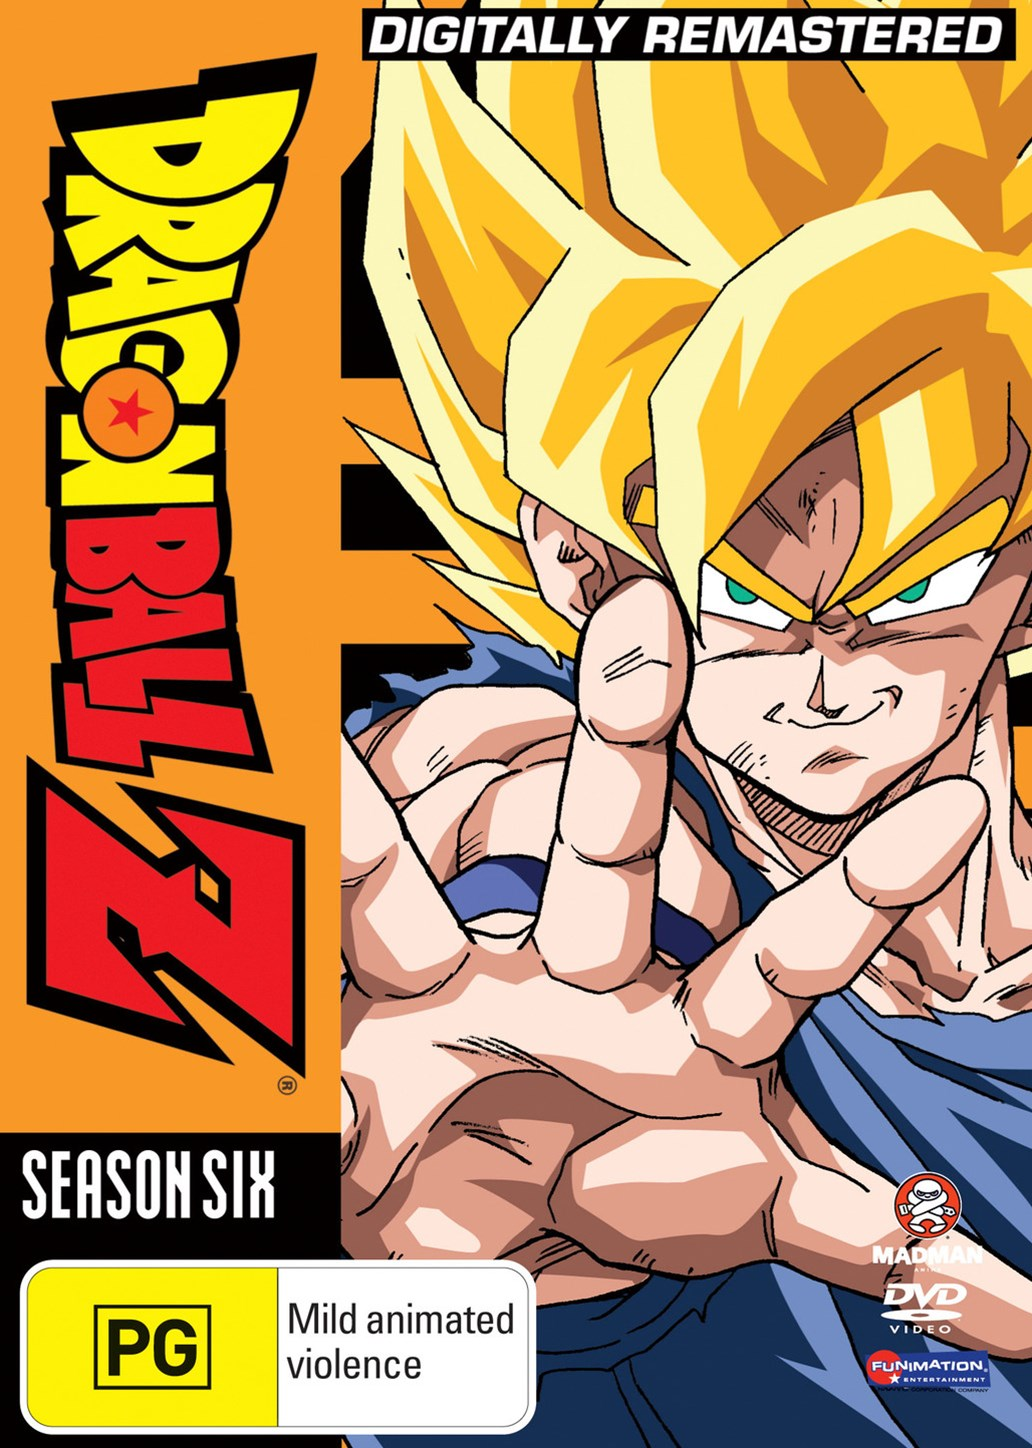 Dragon Ball Z Remastered Uncut Season 6 (Eps 166-194) (Fatpack)